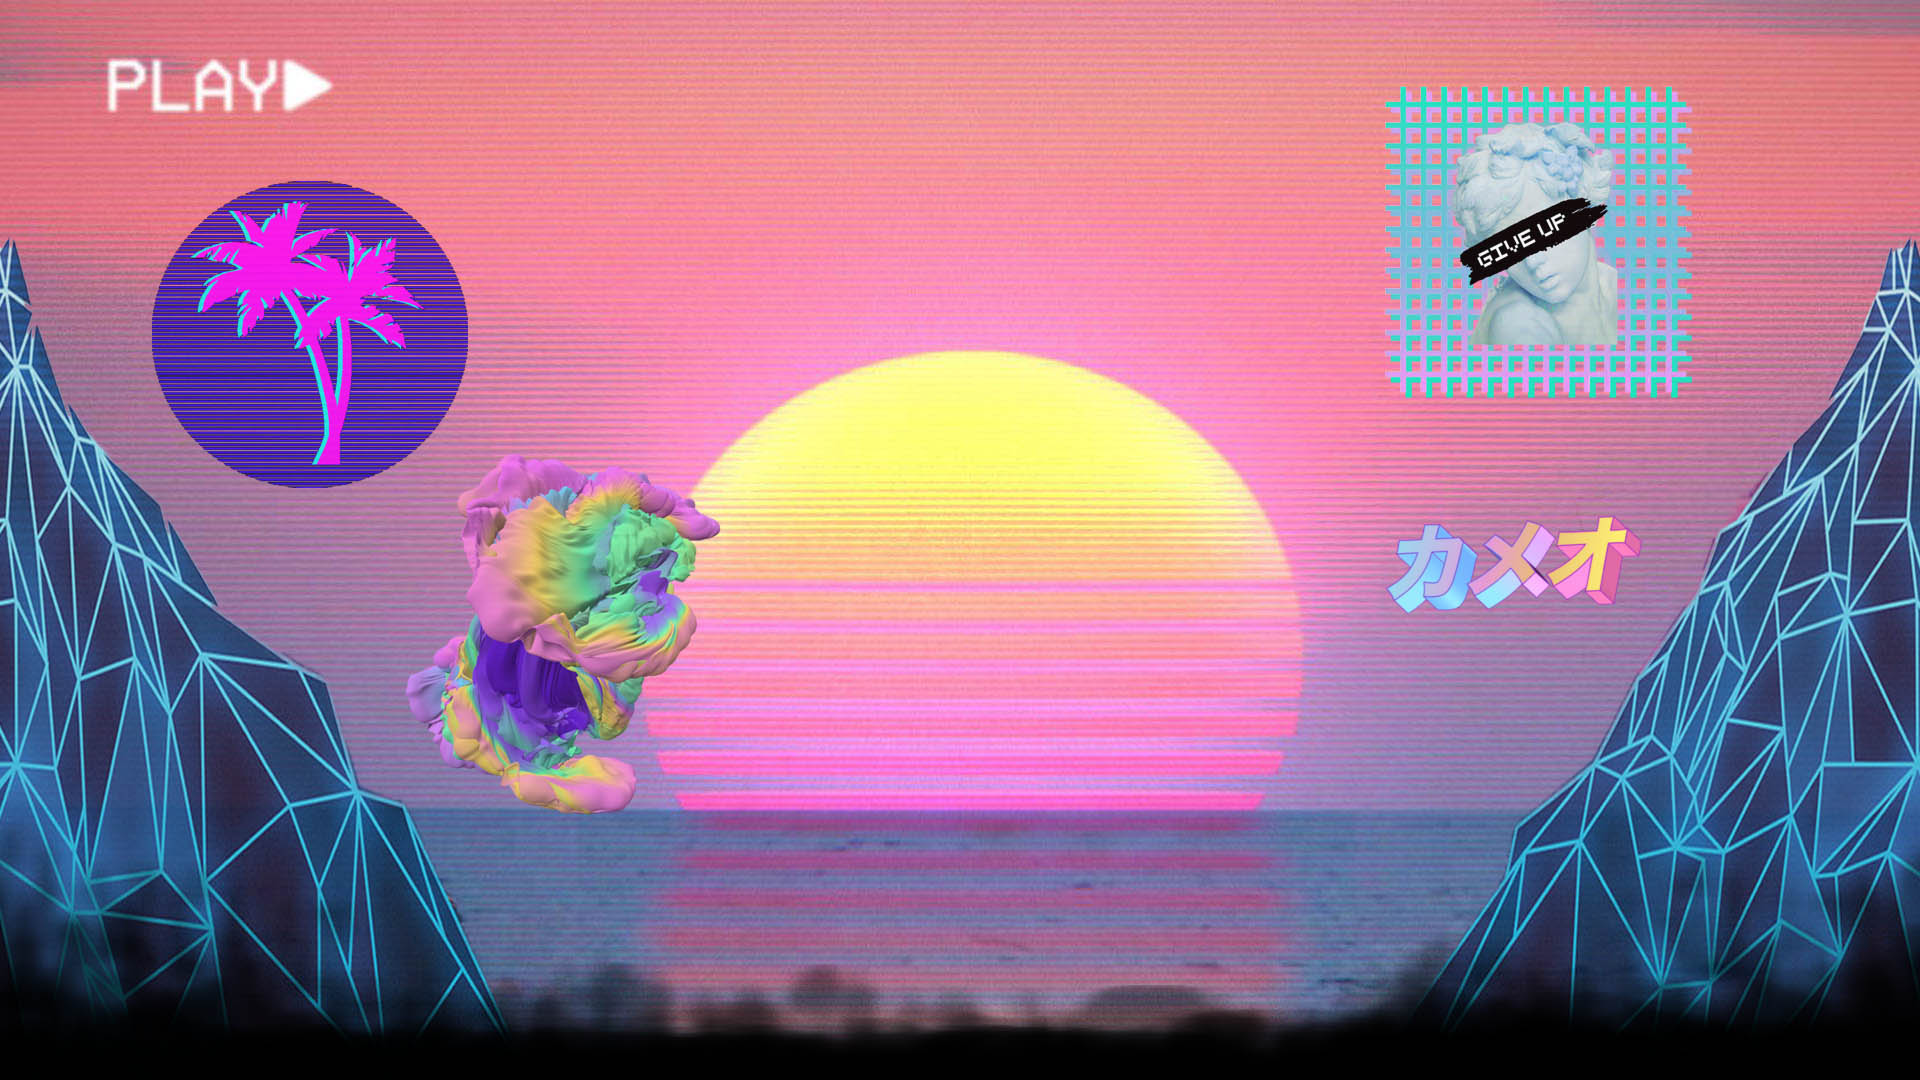 Mlg-dank Memes Link - Vaporwave Aesthetic Background , HD Wallpaper & Backgrounds